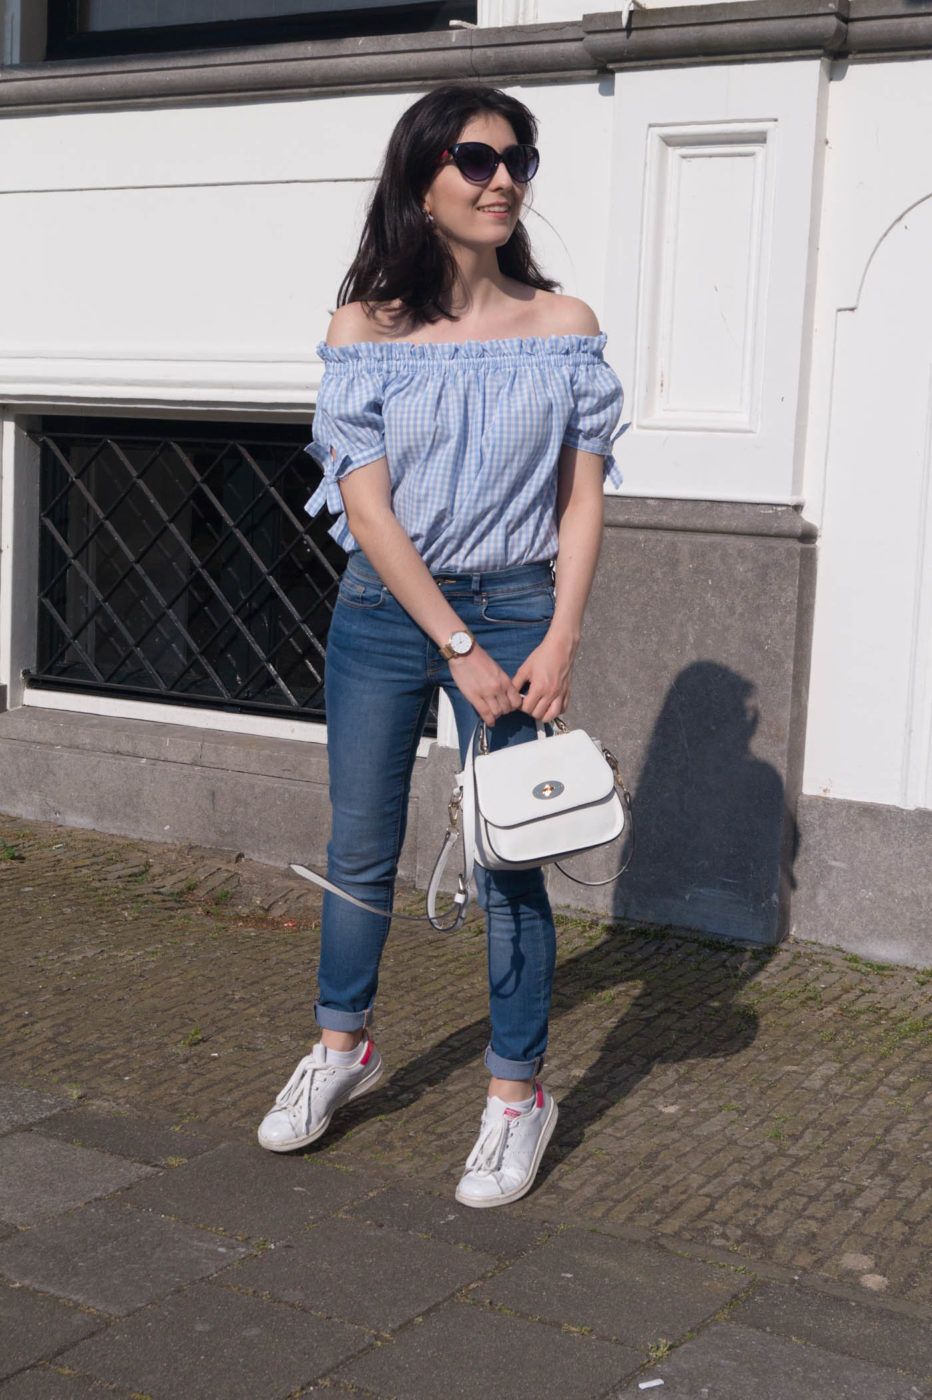 Gingham top with jeans